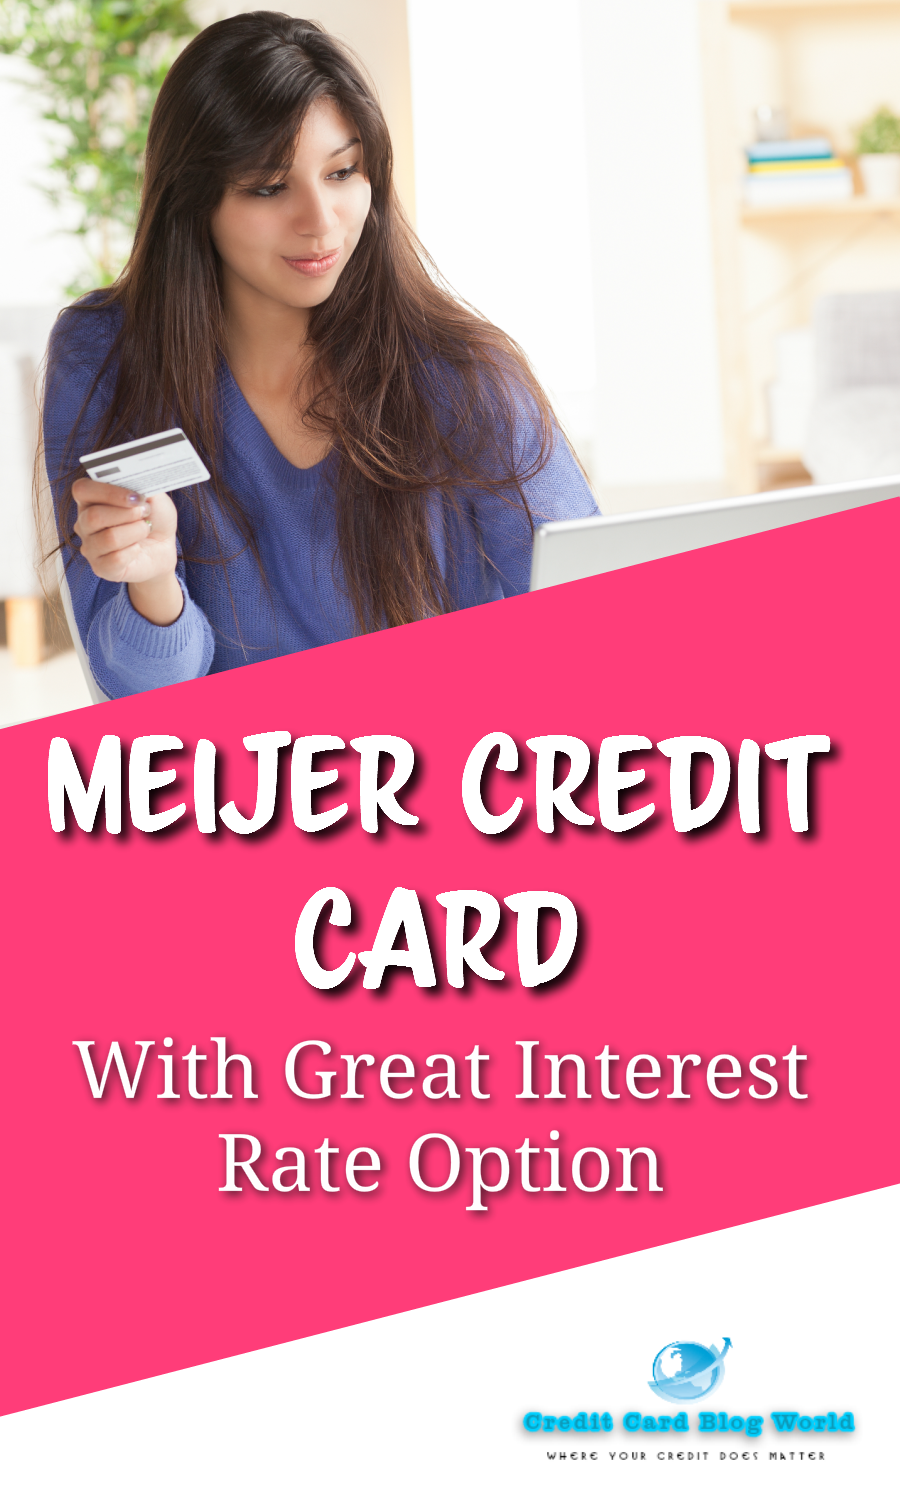 How Long Does It Take To Get Meijer Credit Card